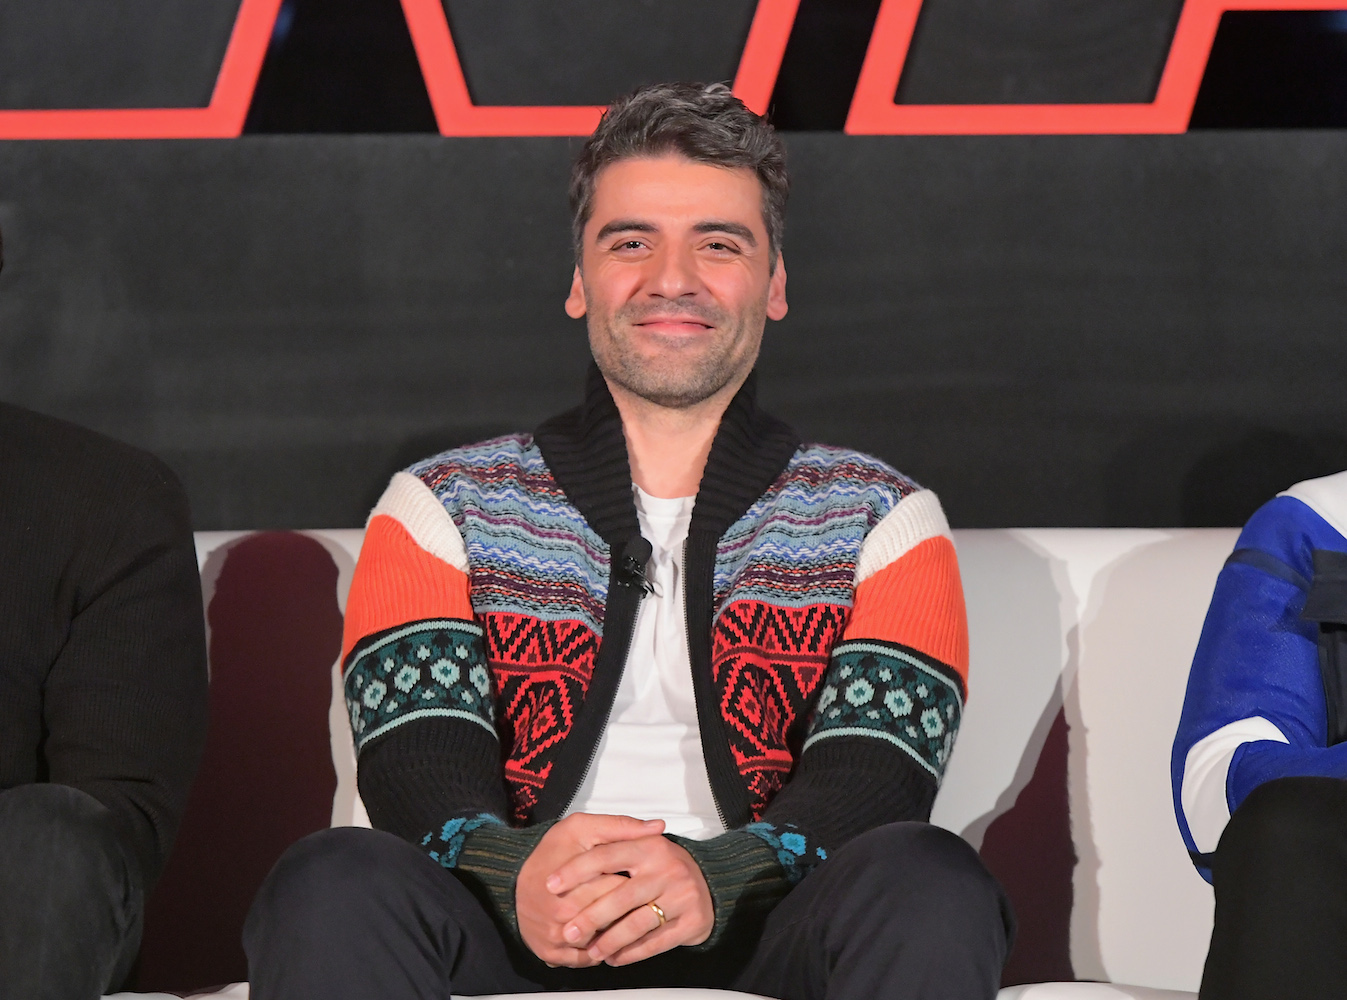 Oscar Isaac's Holiday Sweater at 'The Last Jedi' Press Conference Set off an Internet Frenzy